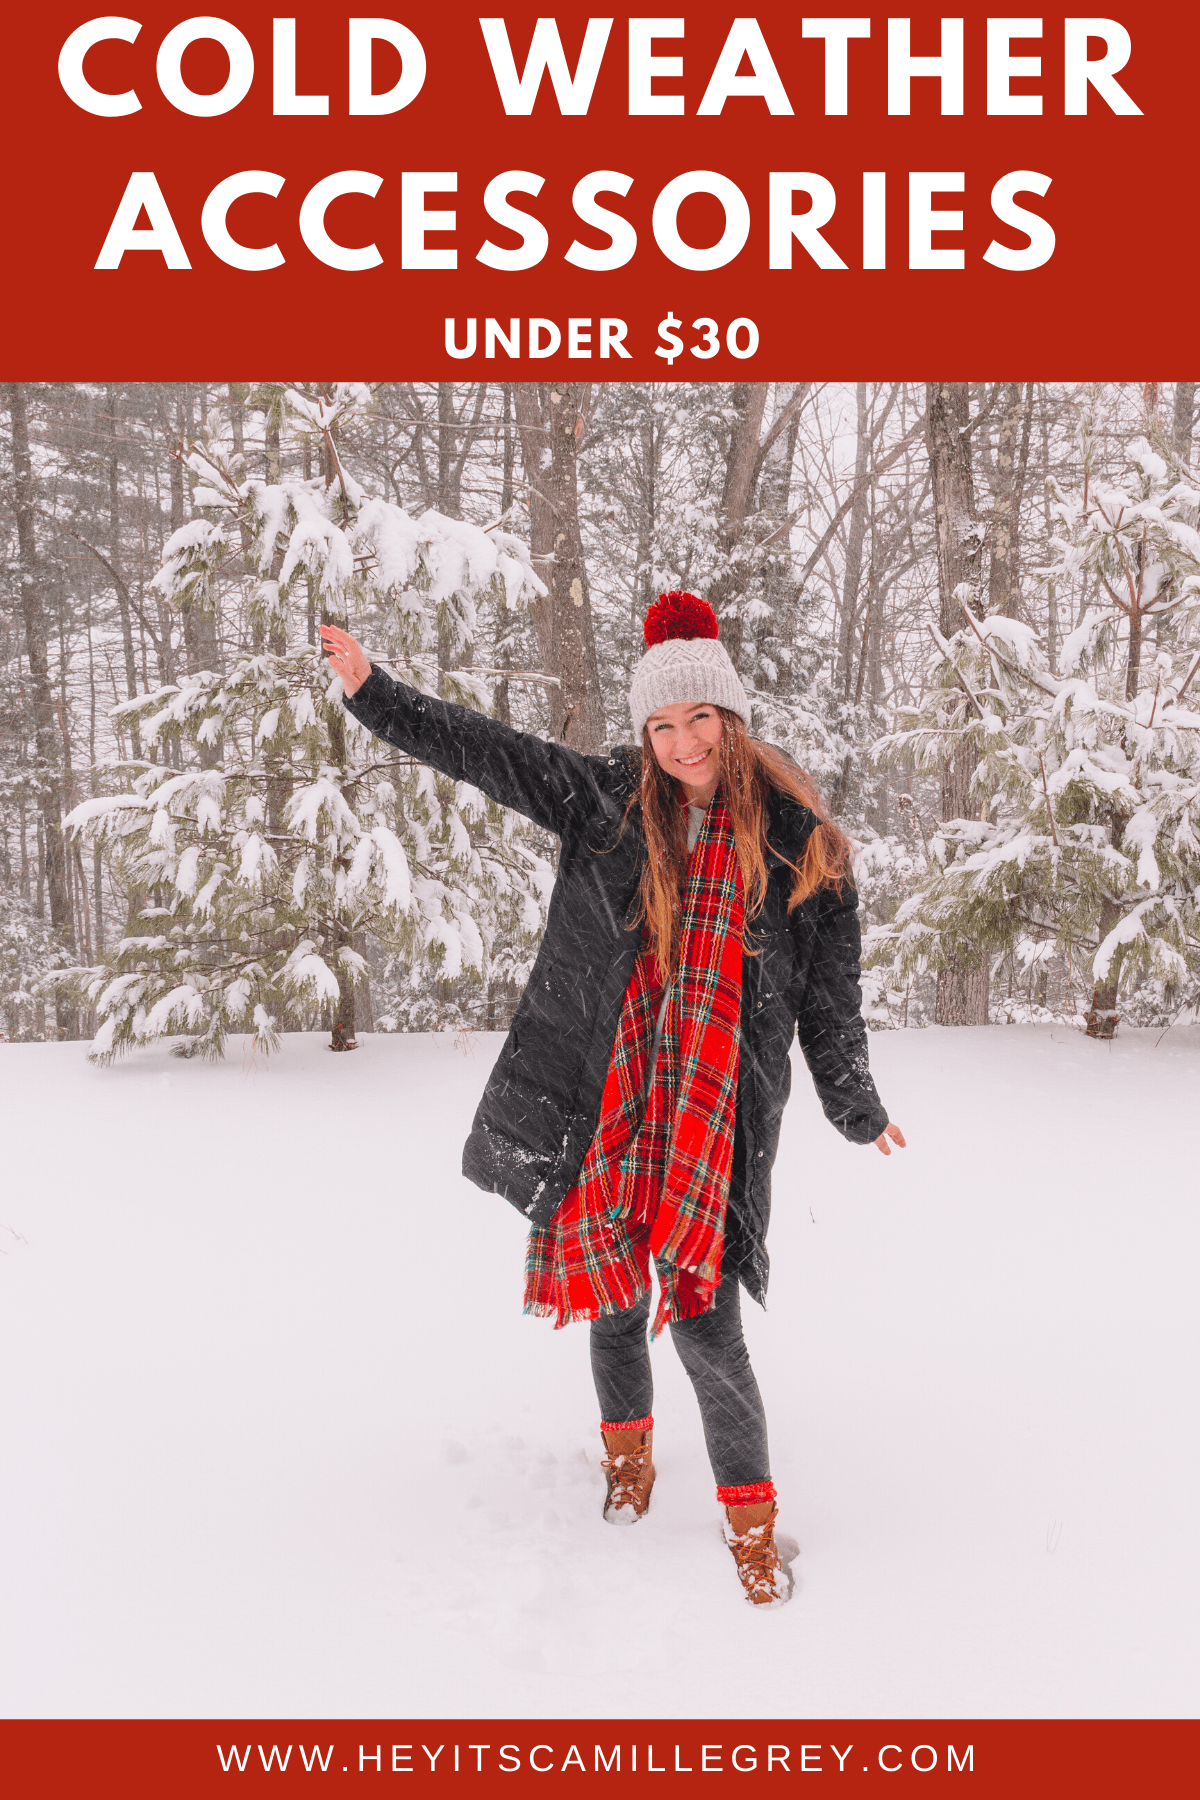 Cold Weather Accessories under $30 | Hey Its Camille Grey #fashion #gloves #wintersocks #scarves #beanies #coldweather #winter